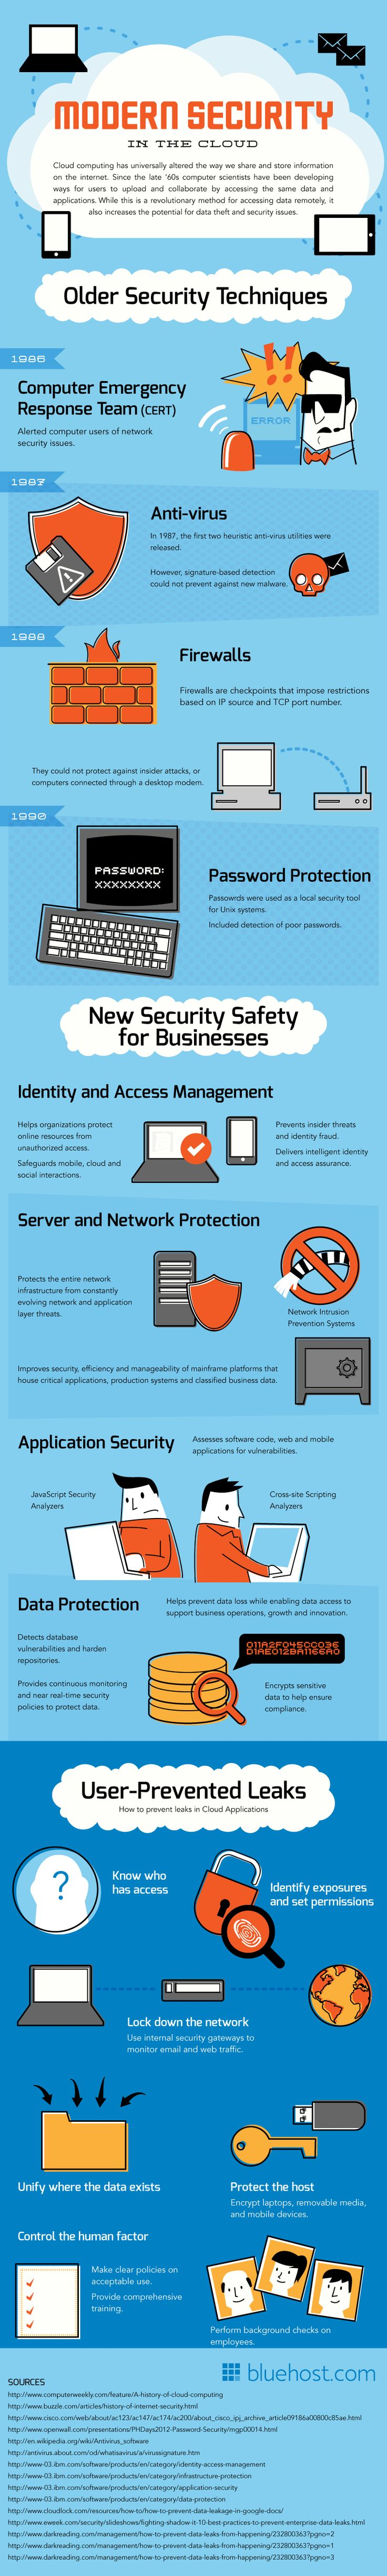 Modern Security In The Cloud